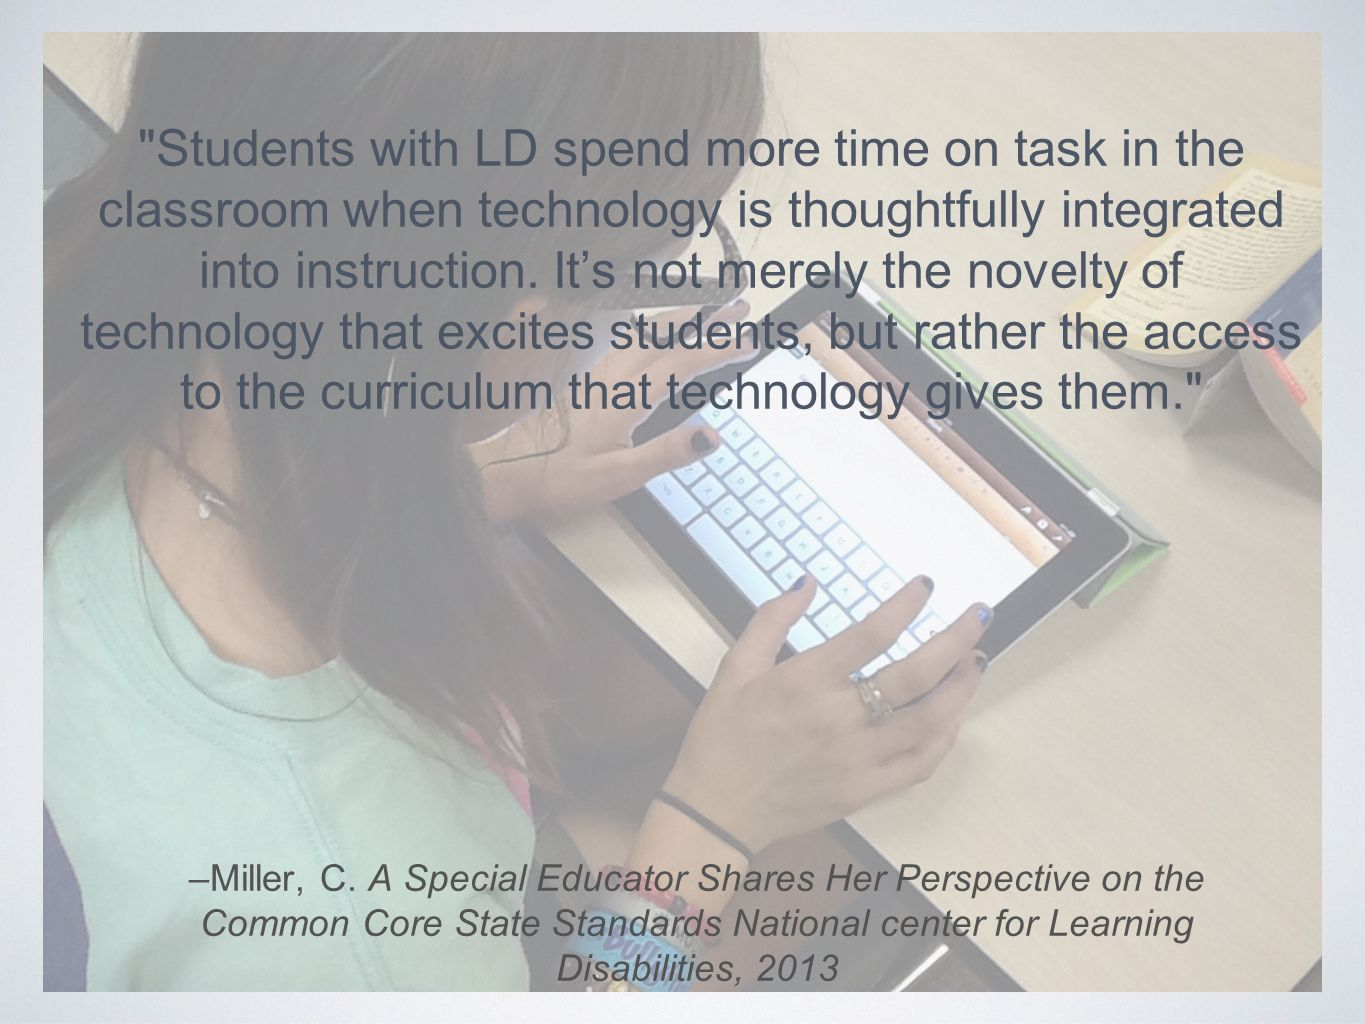 –Miller, C. A Special Educator Shares Her Perspective on the Common Core State Standards National center for Learning Disabilities, 2013